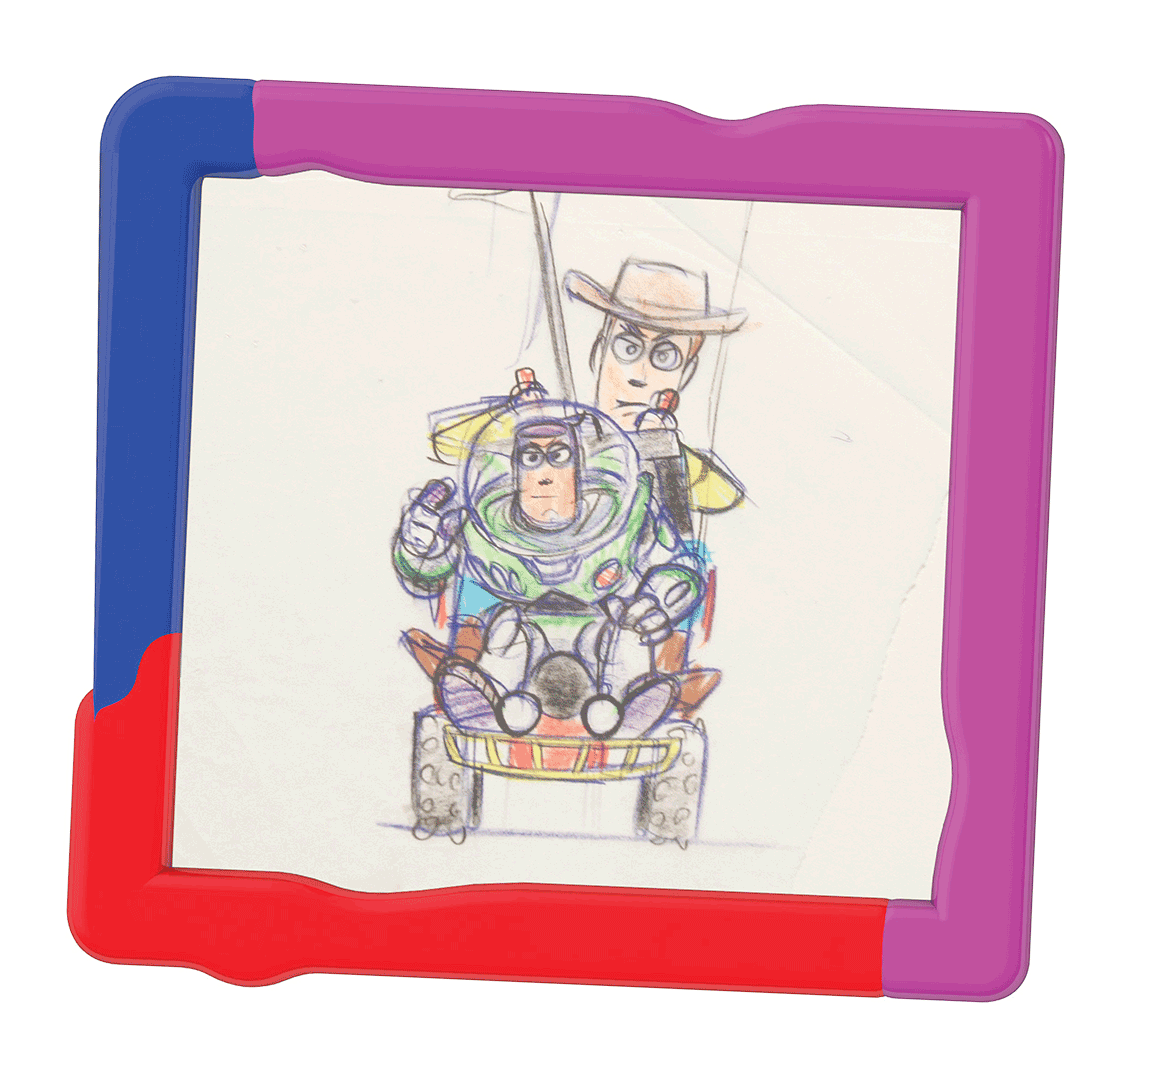 Sketch from 'Toy Story' shown at a '20th Anniversary of Disney Pixar Animation' exhibition, at The Science Museum in London in 2006.